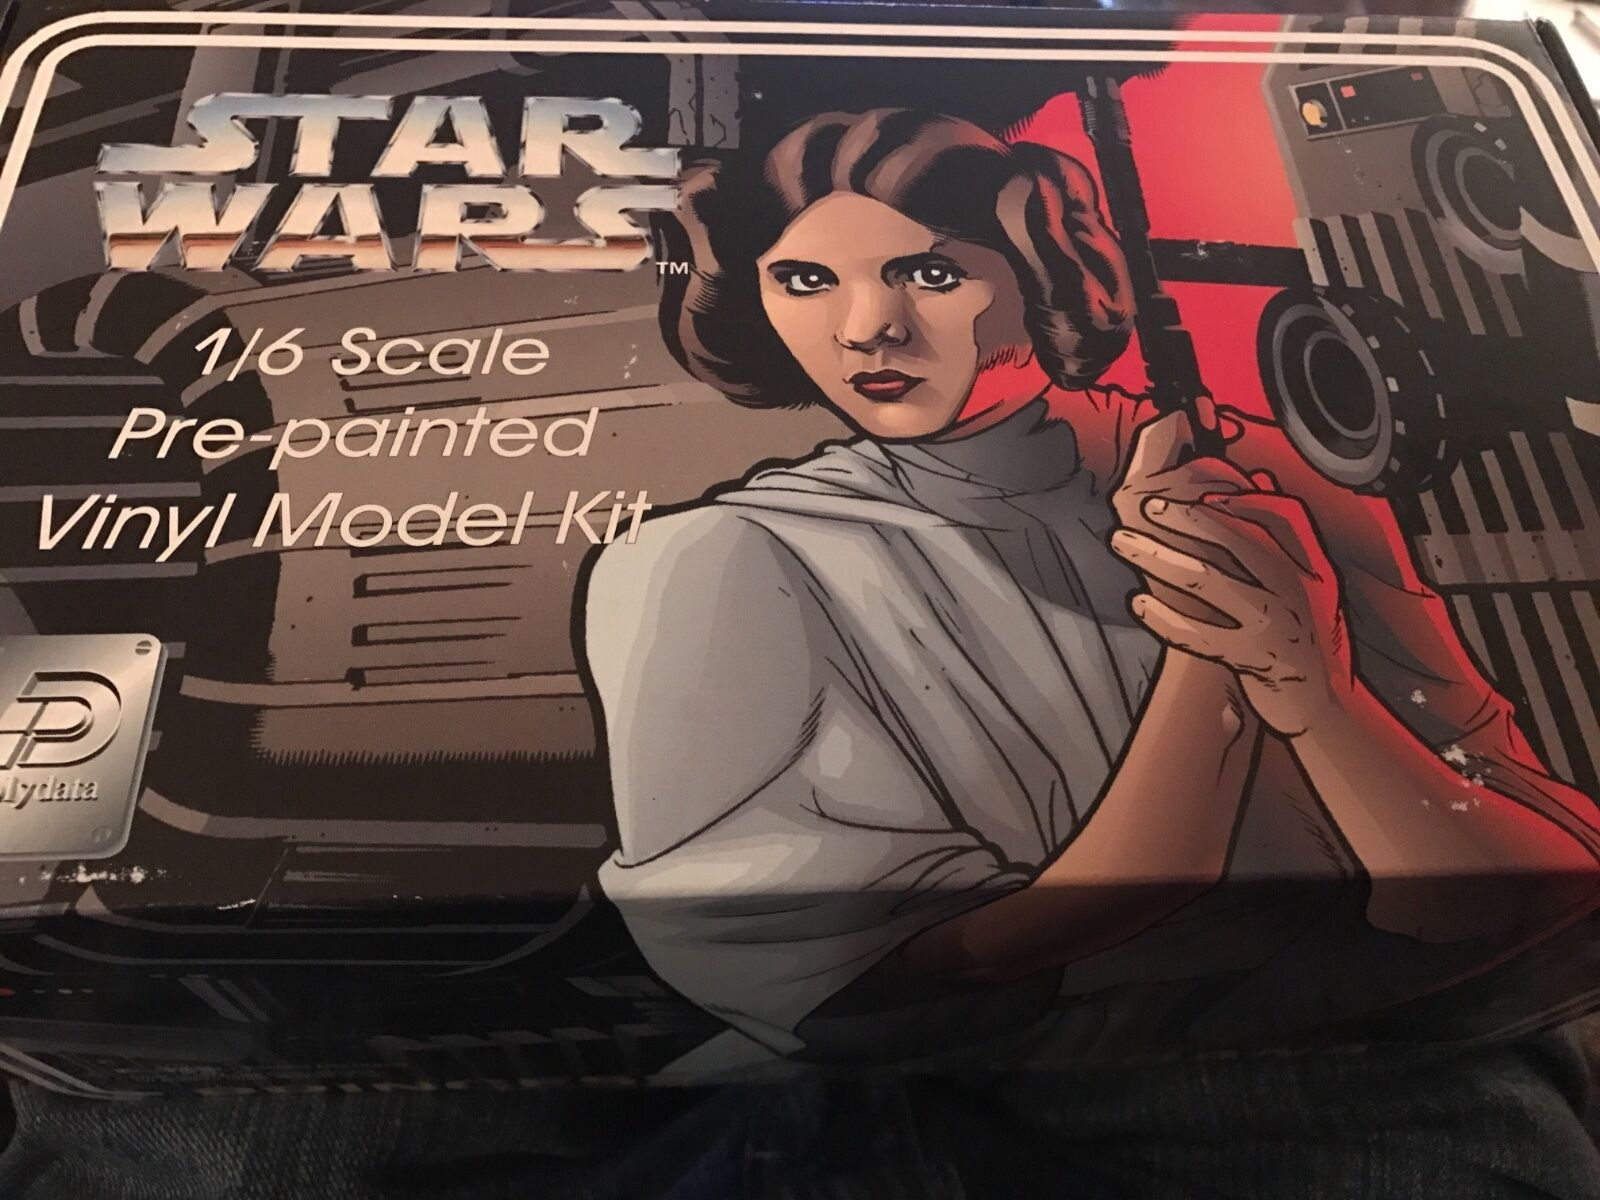 Star Wars 1 6 scale Princess Leia Pre-painted Vinyl Model Kit 1995 NOS